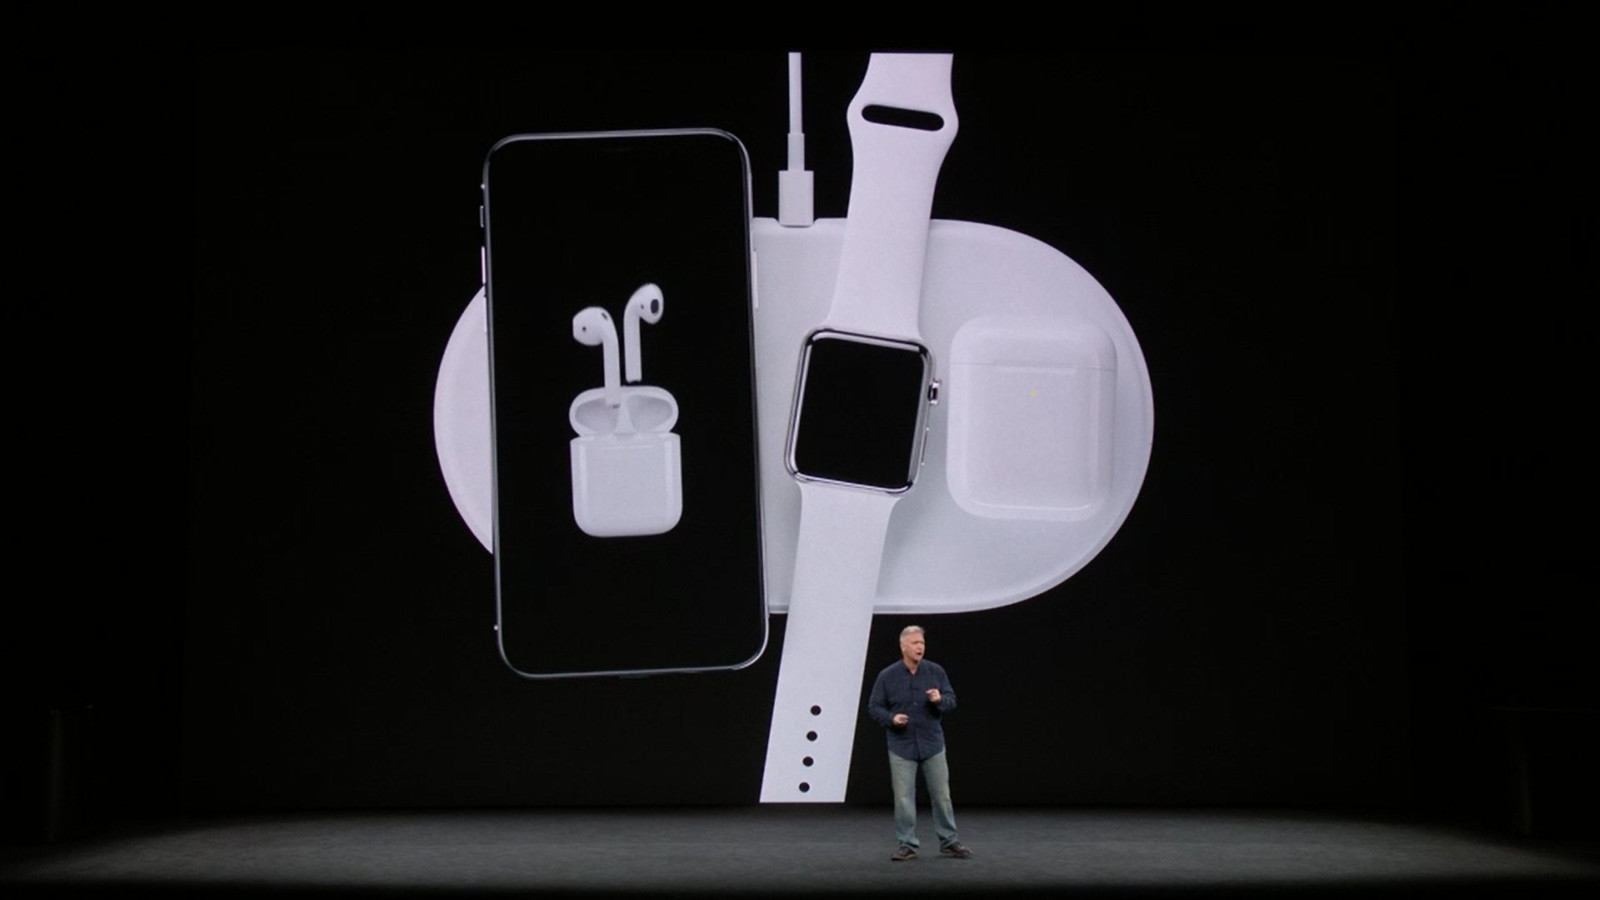 Apple will finally launch its AirPower charging mat in September